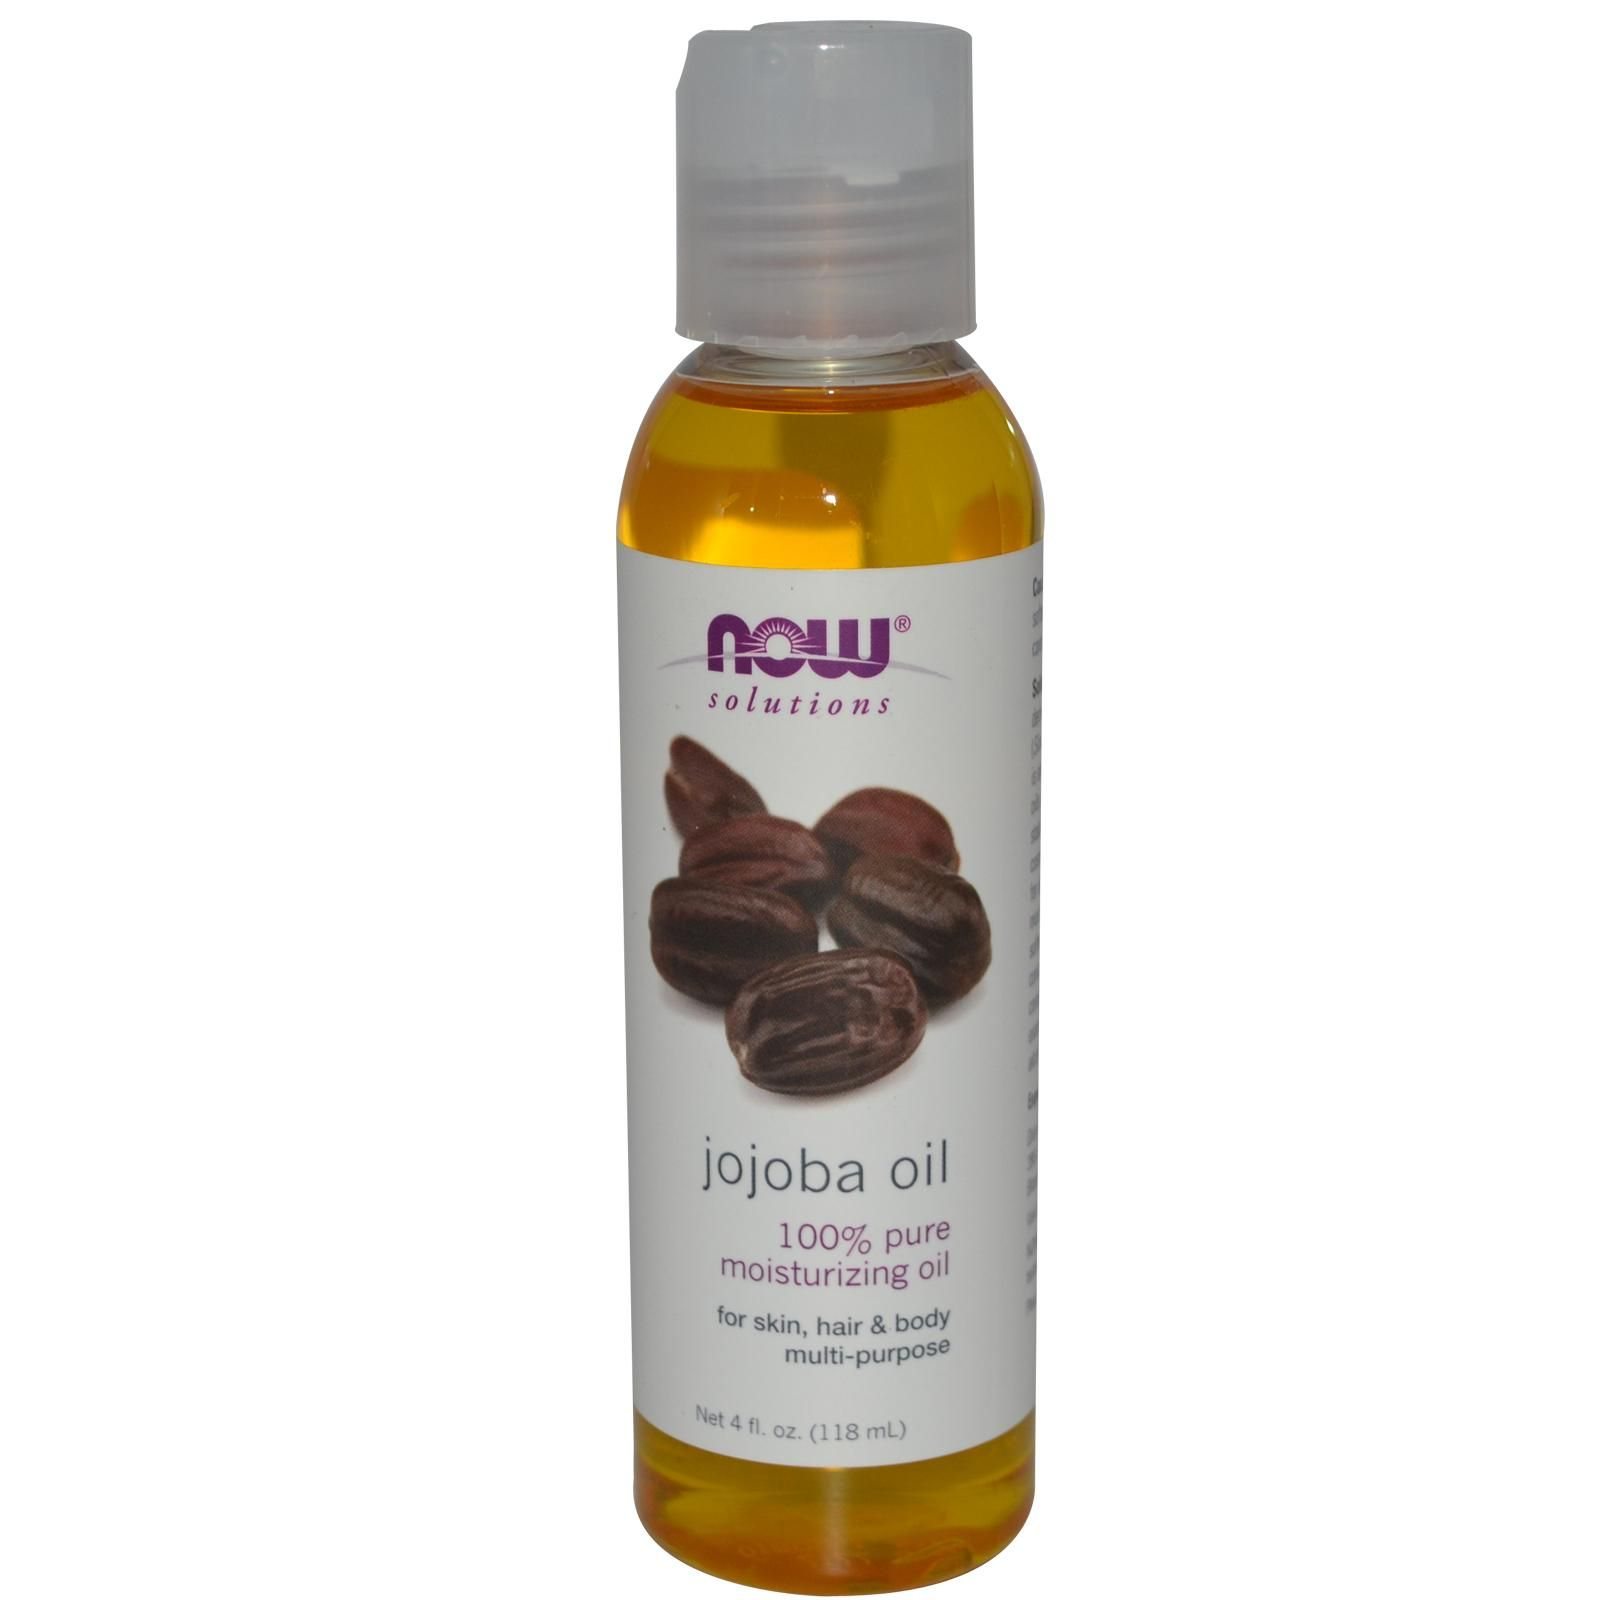 Jojoba Oil - works great for my dry skin I massage in after my shower, keeps me soft.